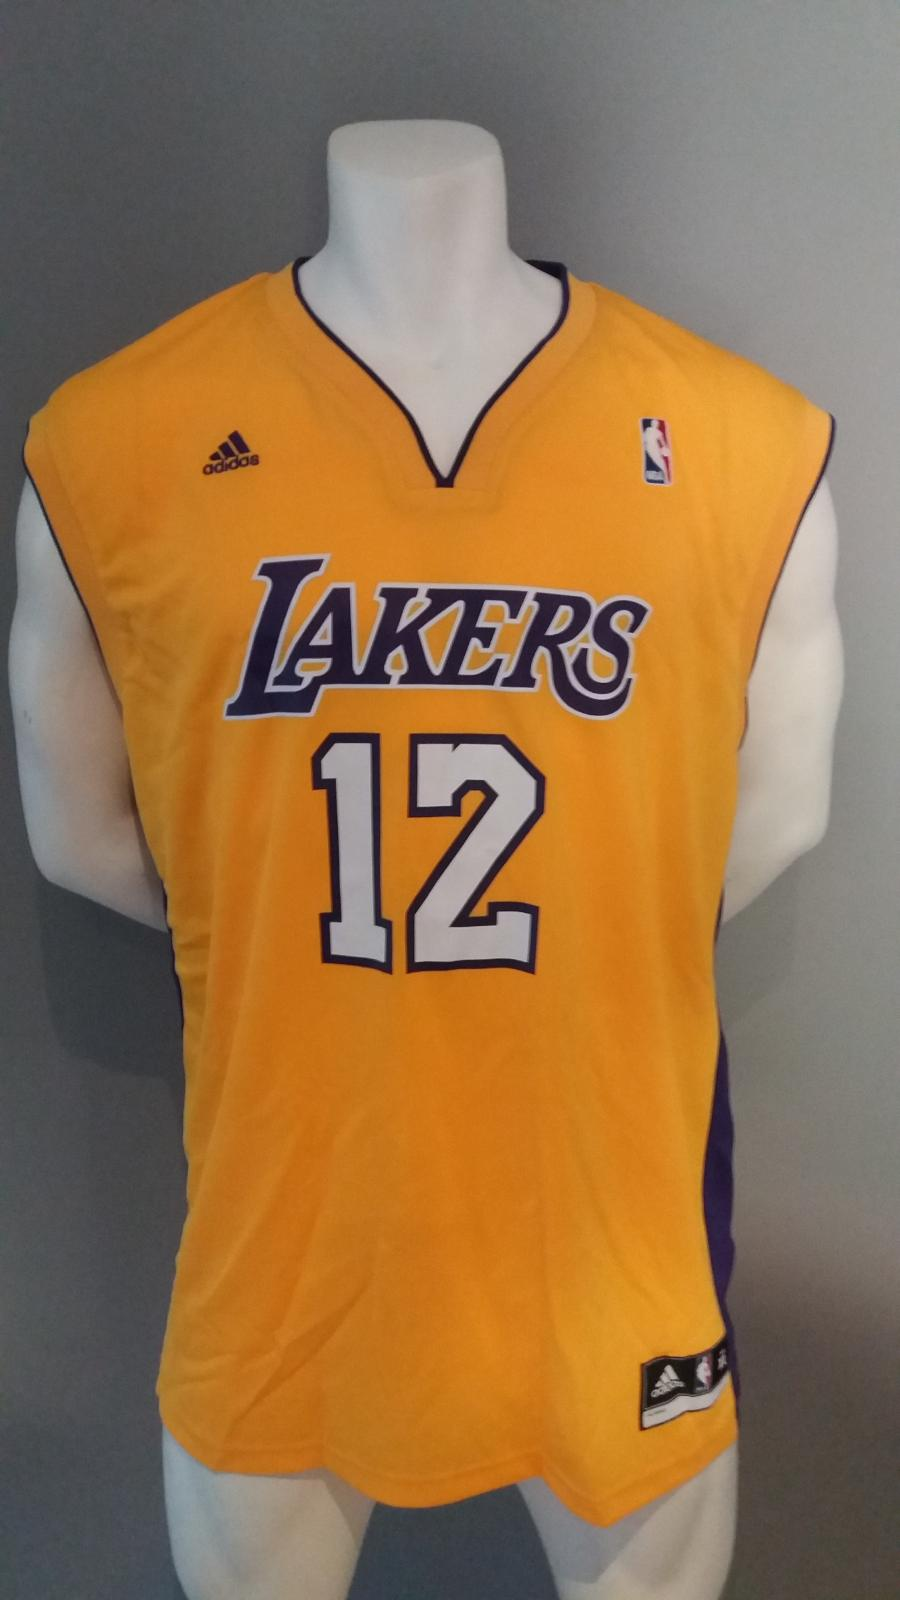 Jersey - Replica - Joven - Dwight Howard - Los Angeles Lakers - Home - Adidas